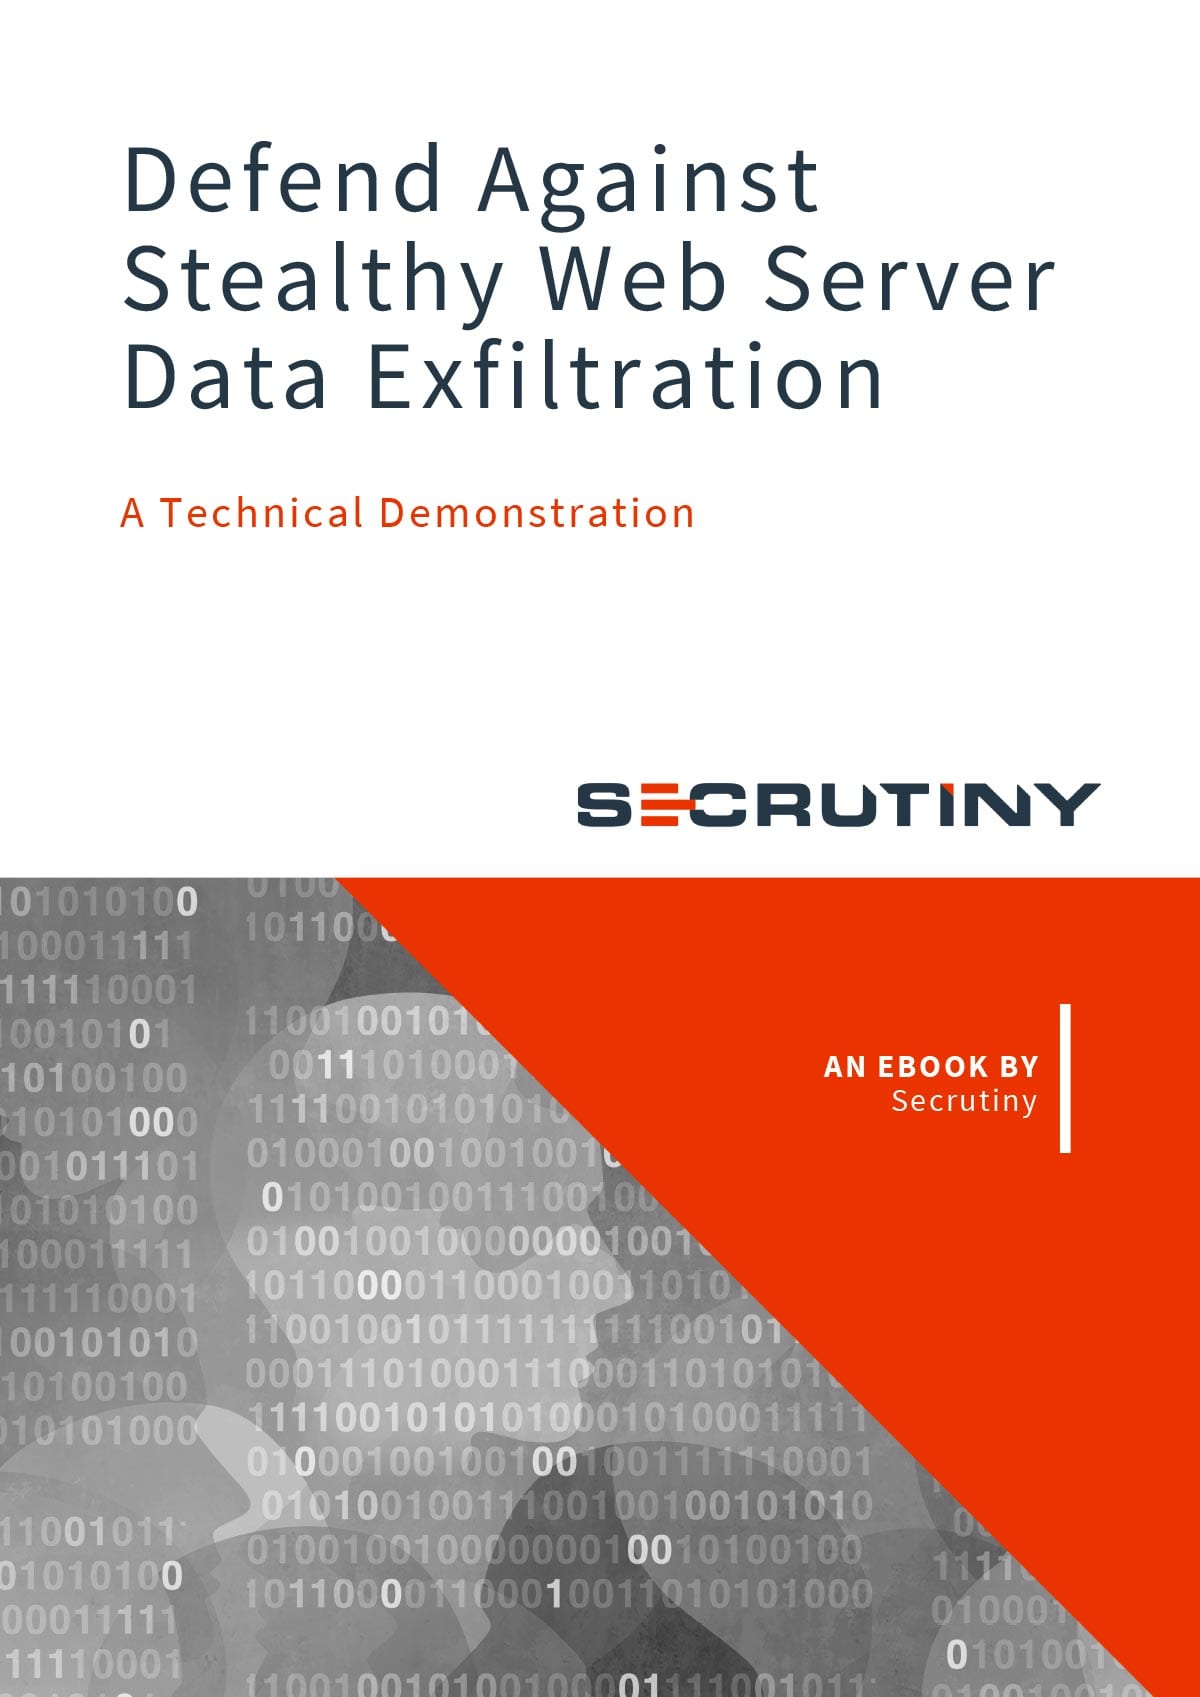 Secrutiny Cybersecurity - eBook - Defend Against Stealthy Web Server Data Exfiltration: A Technical Demonstration